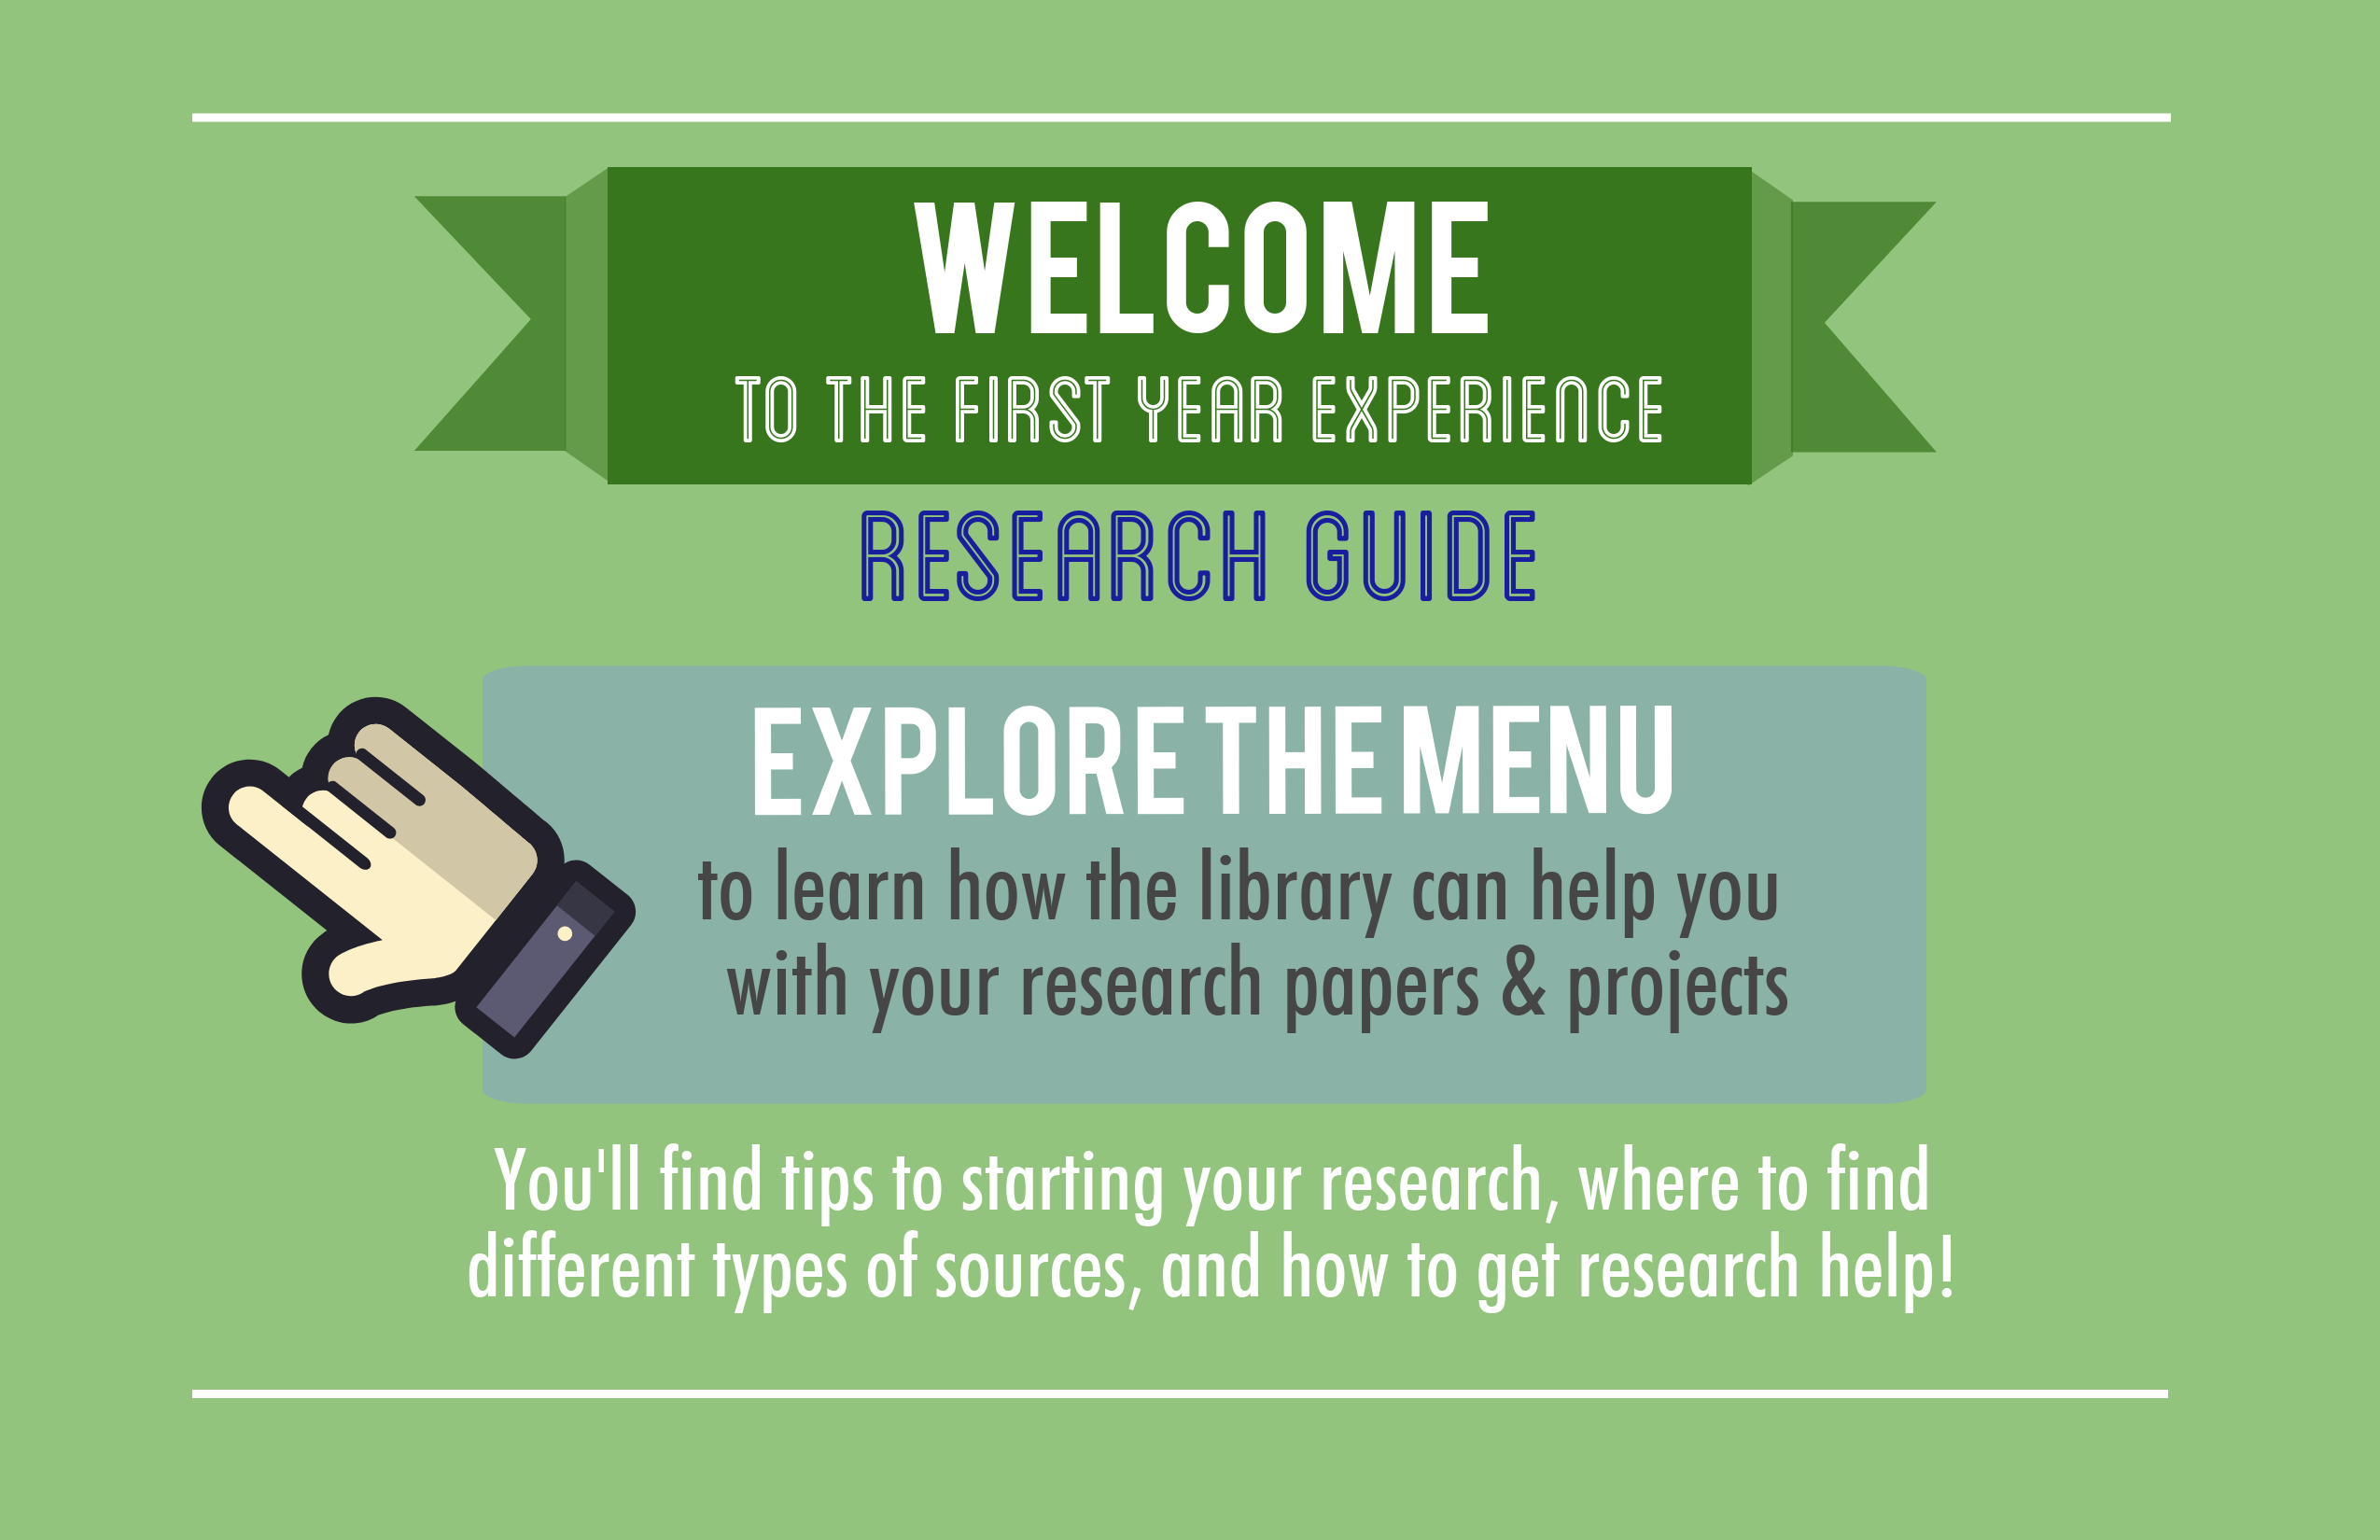 Welcome to the FYE research guide. Explore the menu to learn how the library can help you with your research papers and projects. You'll find tips to starting your research, where to find different types of sources, and how to get research help.